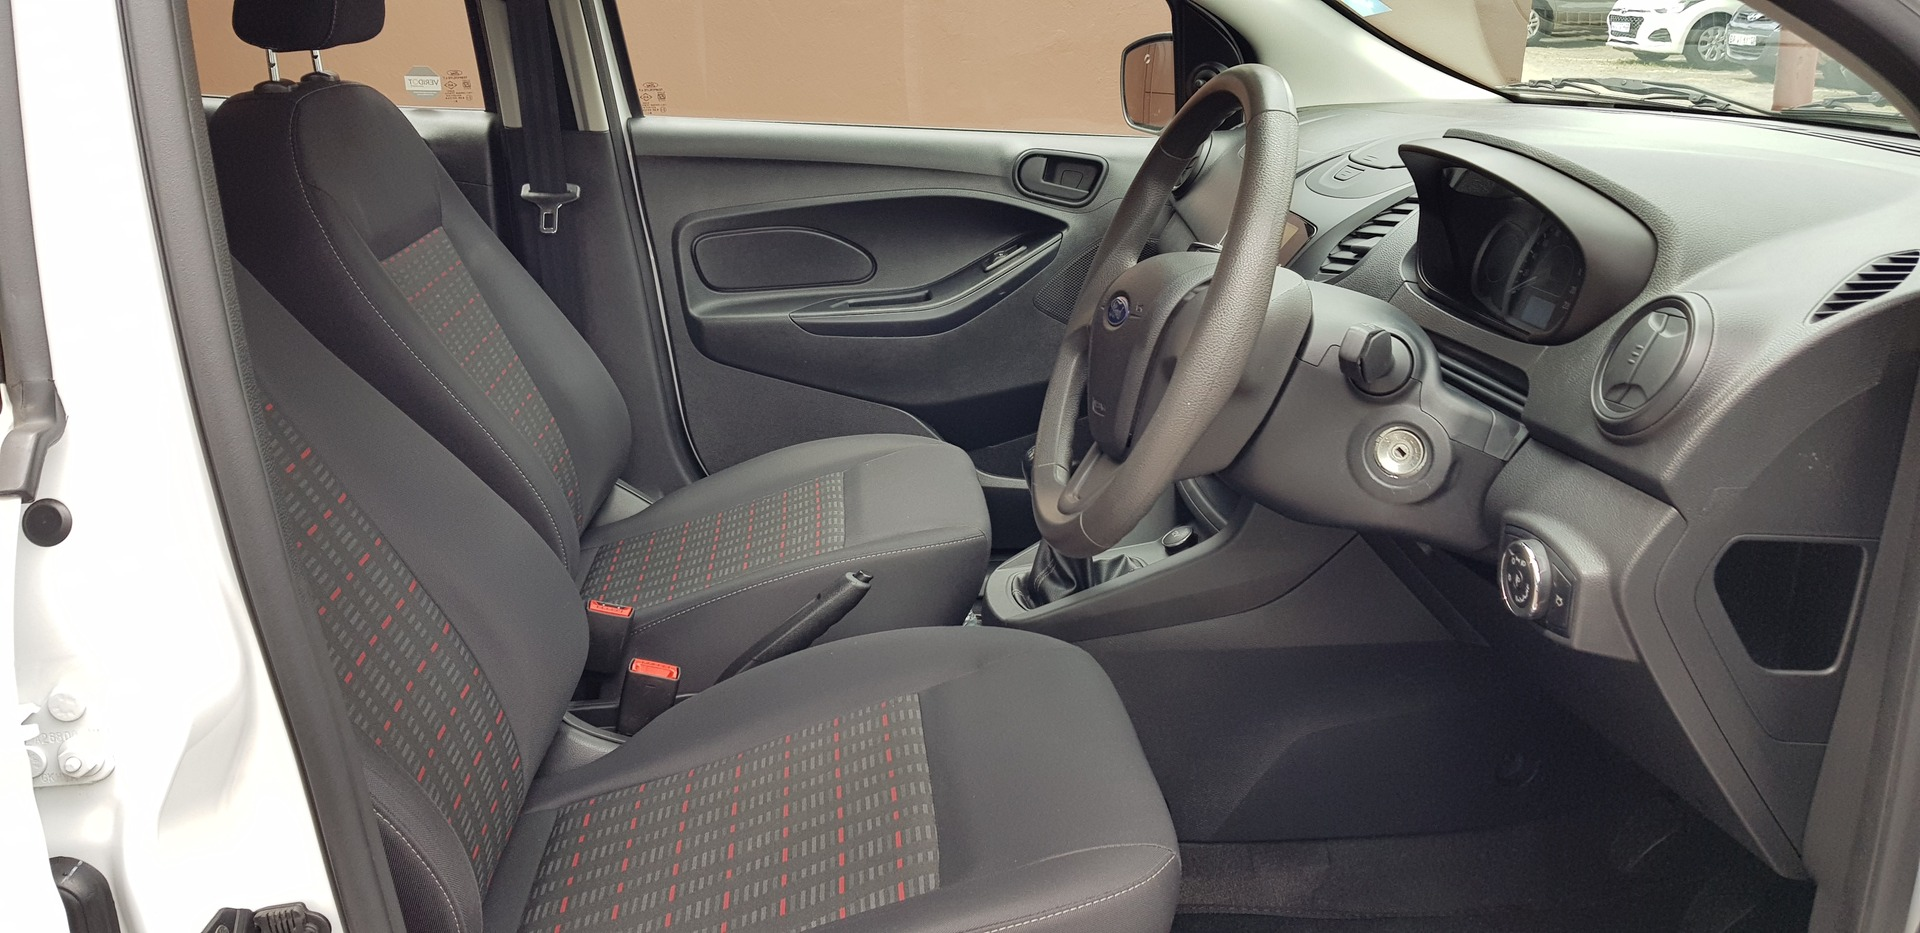 FORD 1.5Ti VCT AMBIENTE (5DR) Johannesburg 8332460